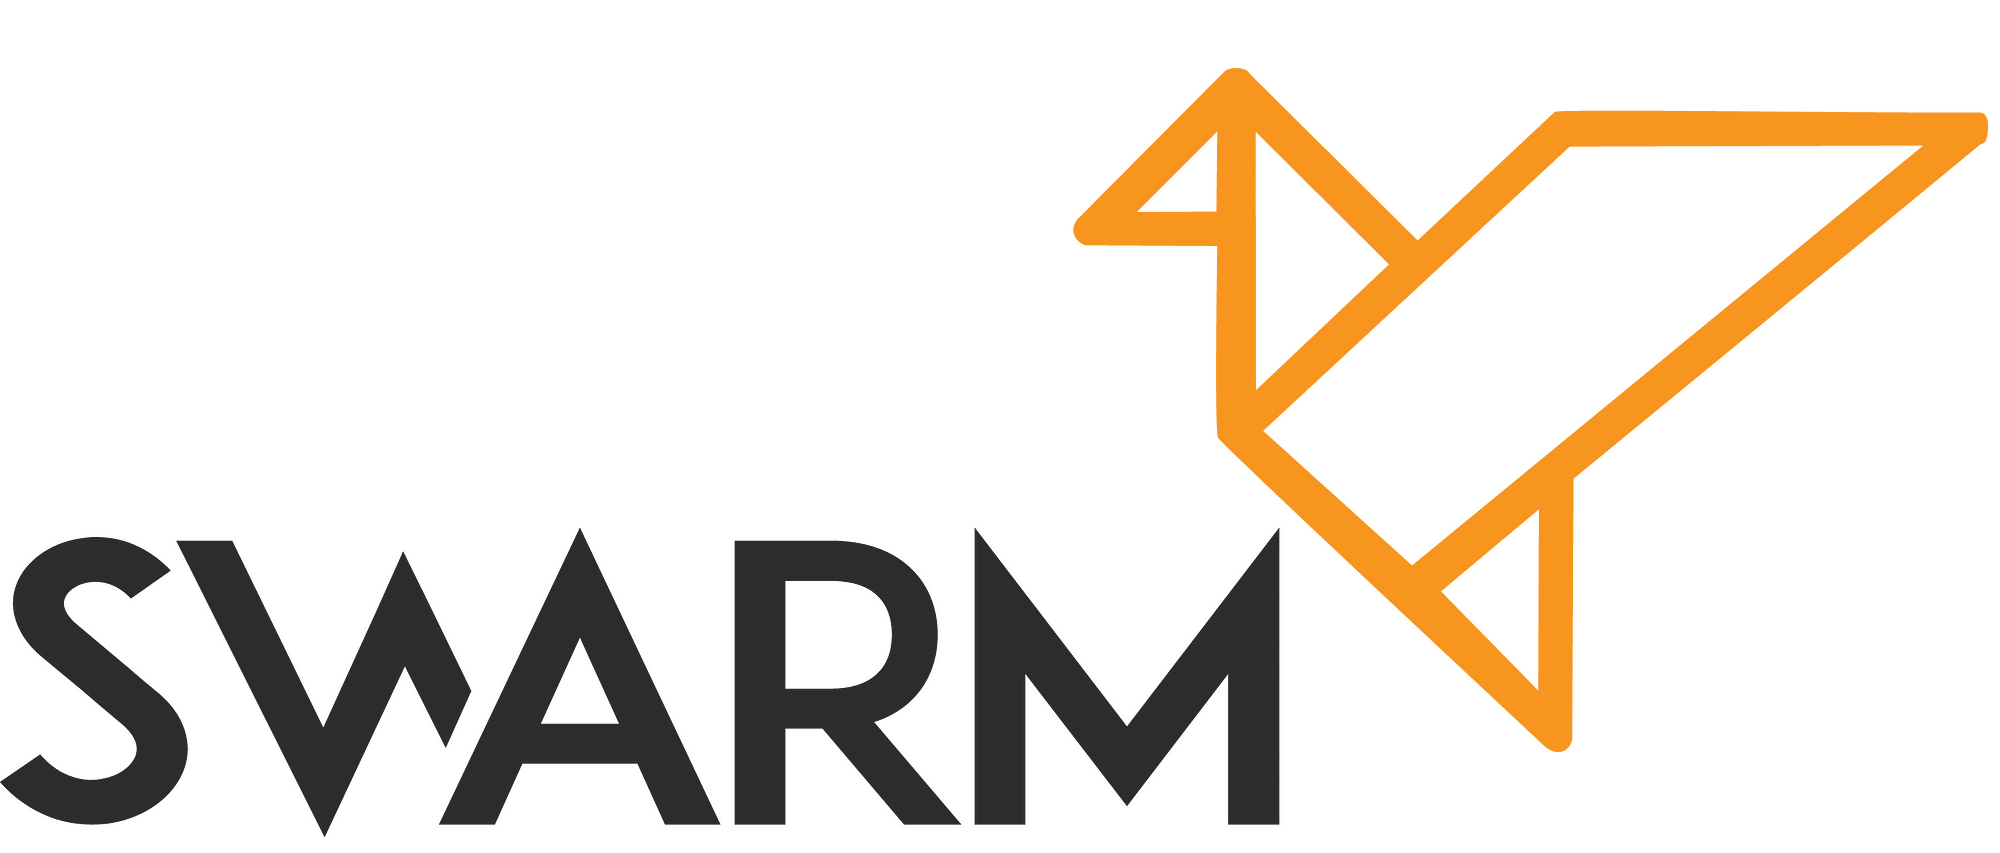 The SWARM Token Issuance Dapp Changes Everything